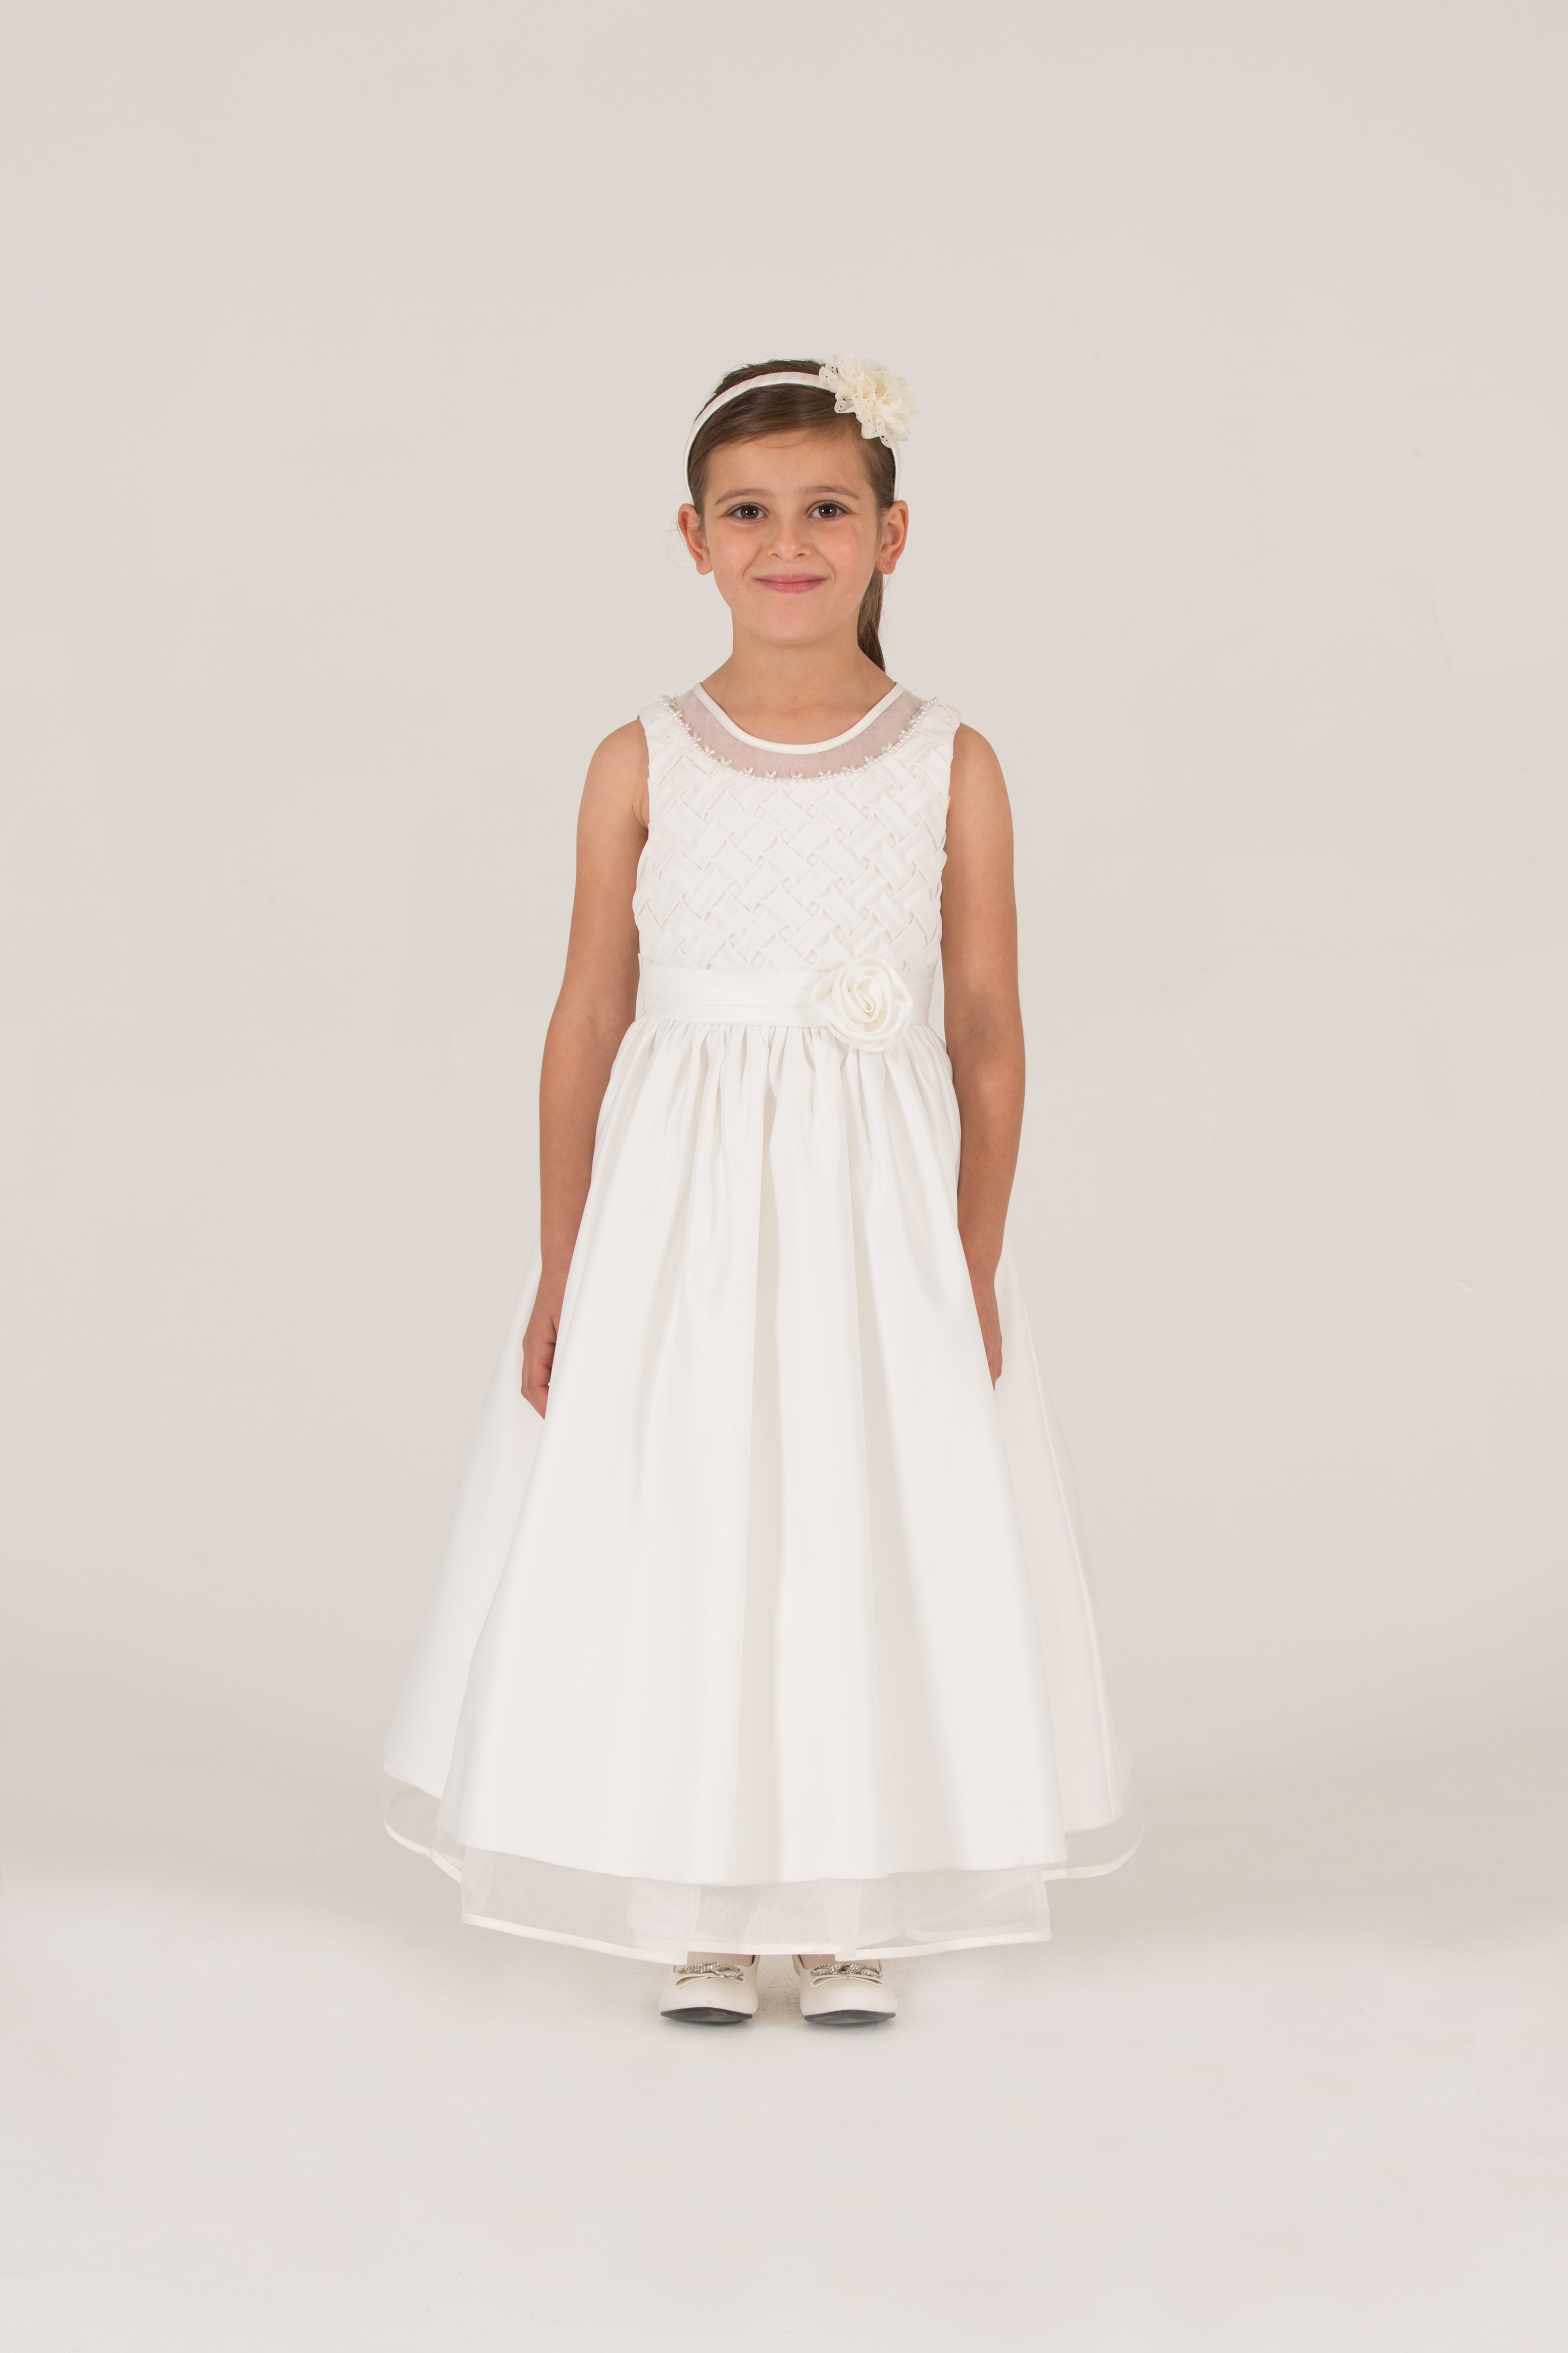 Flower Girl Dresses Australia